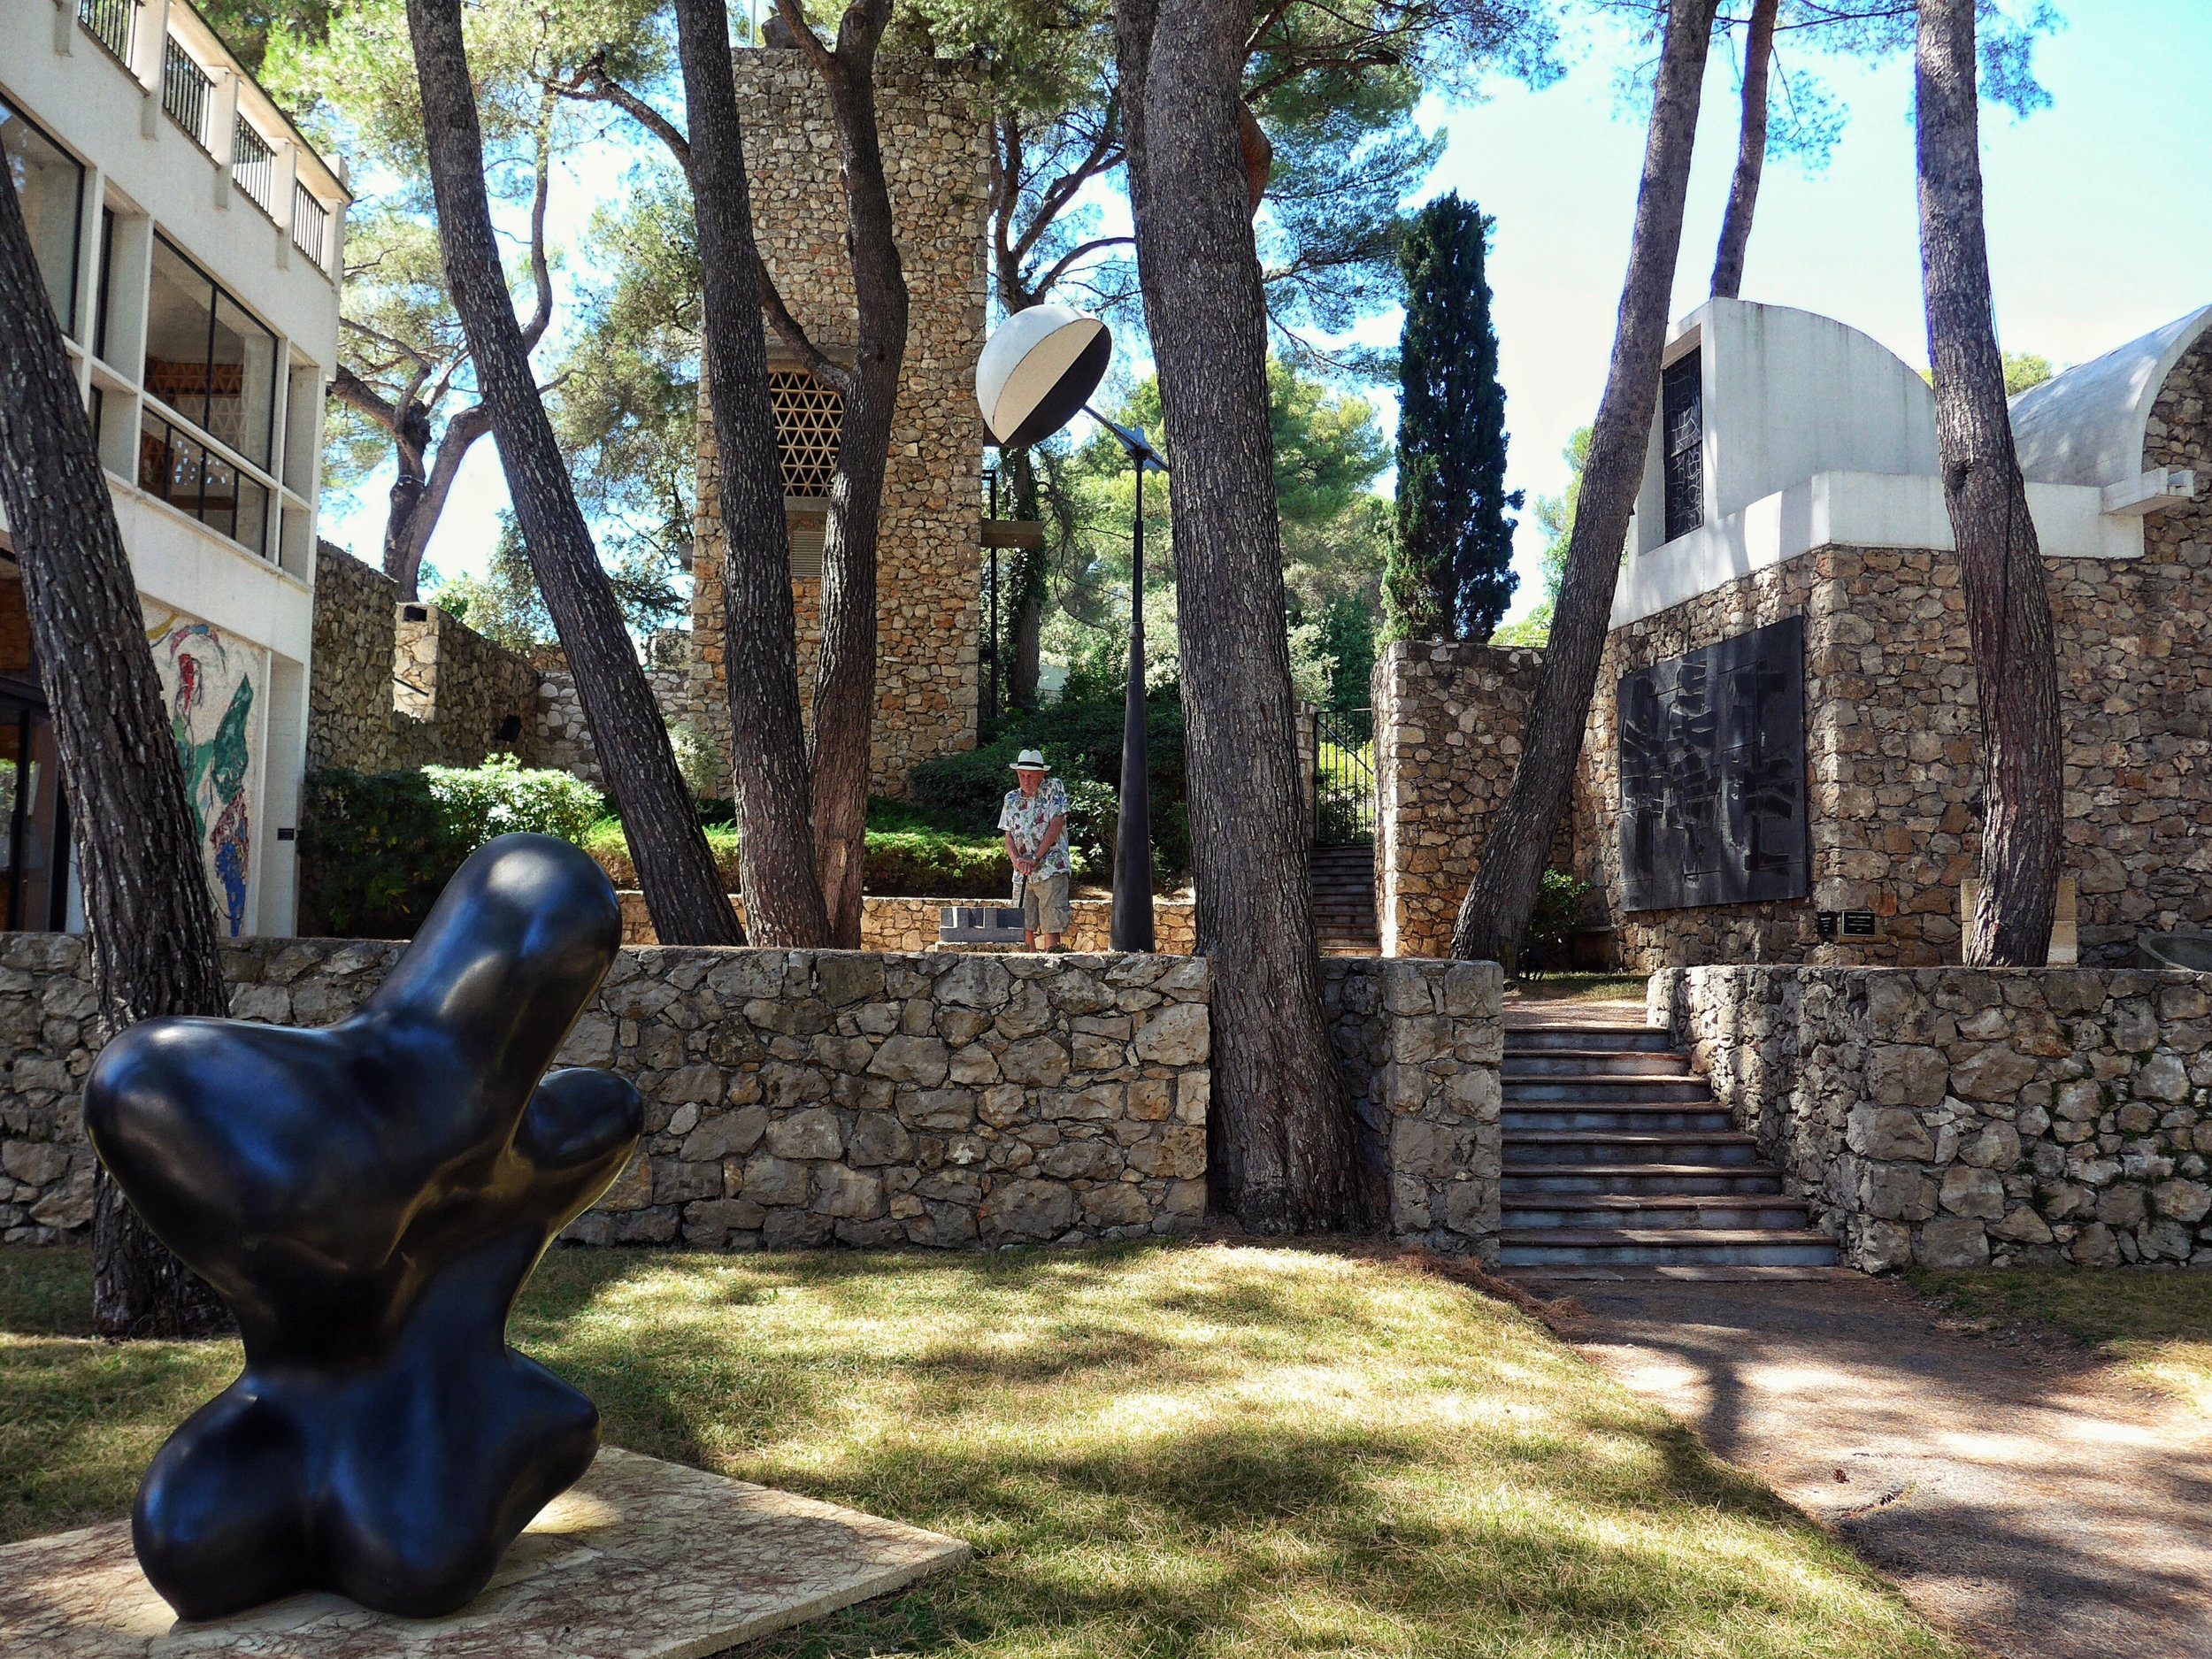 The Maeght Foundation